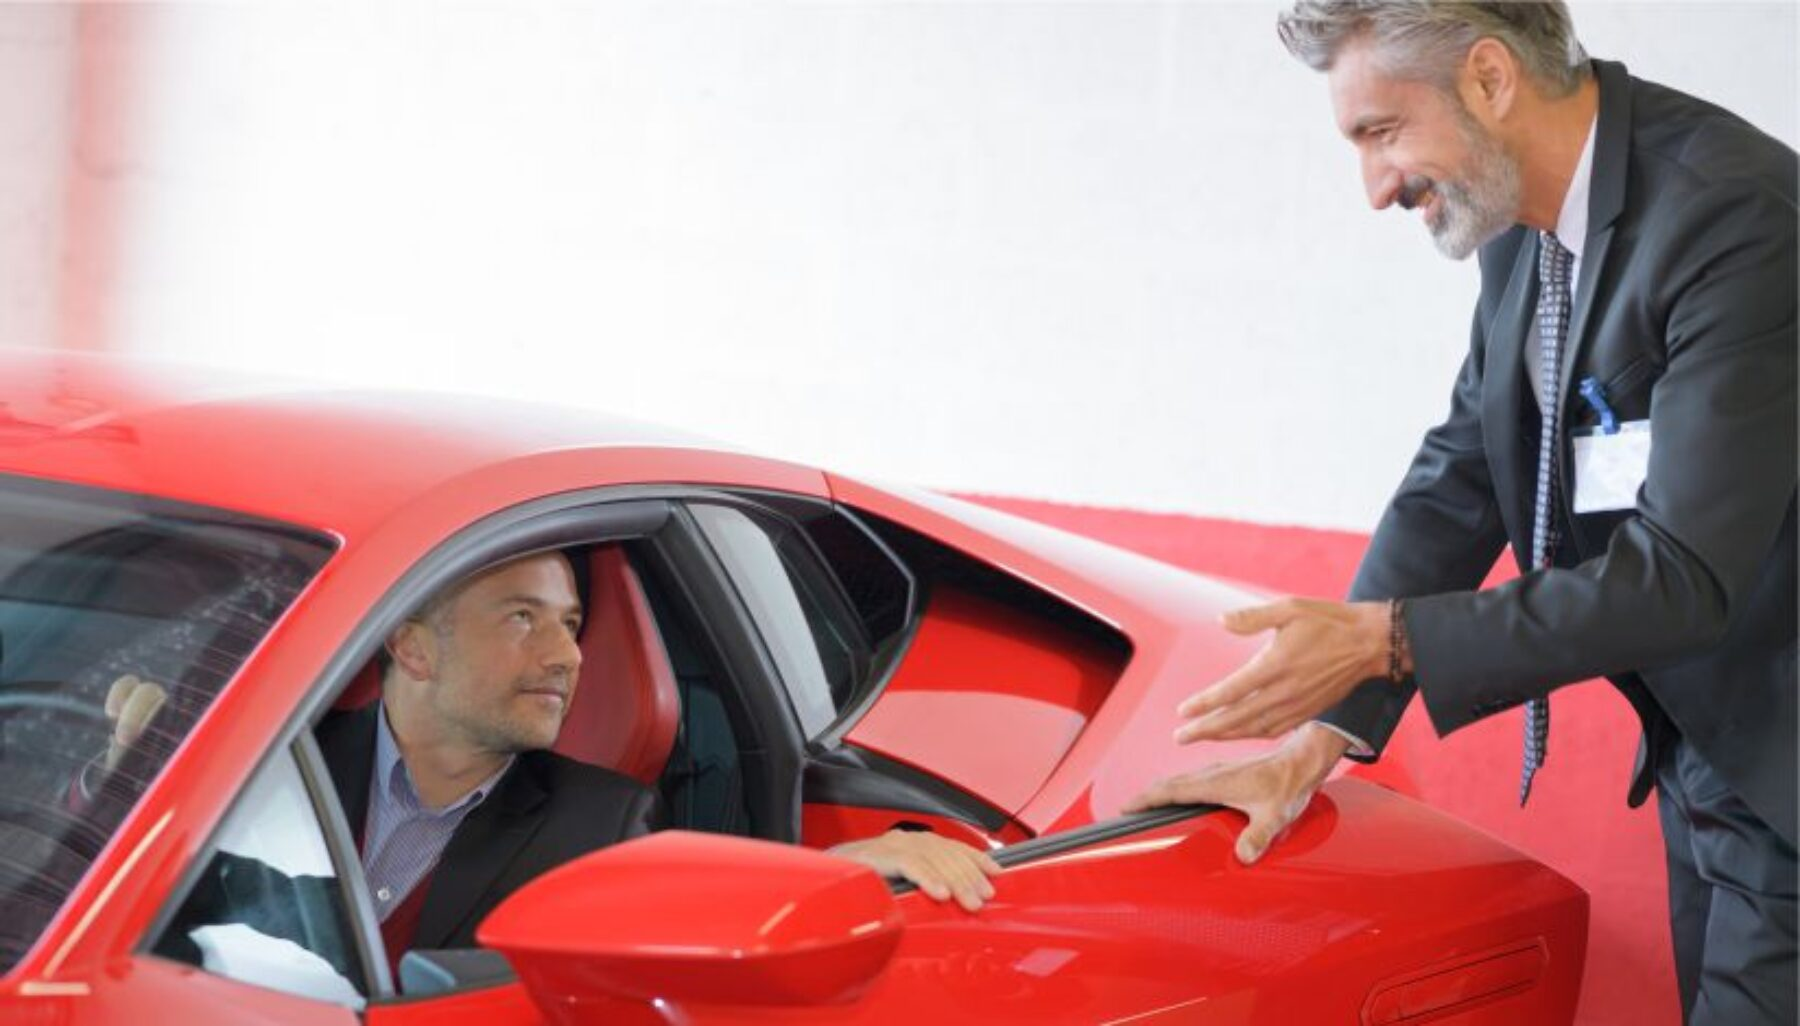 Will That Dream Car Make You Happy - Affluent Vitality